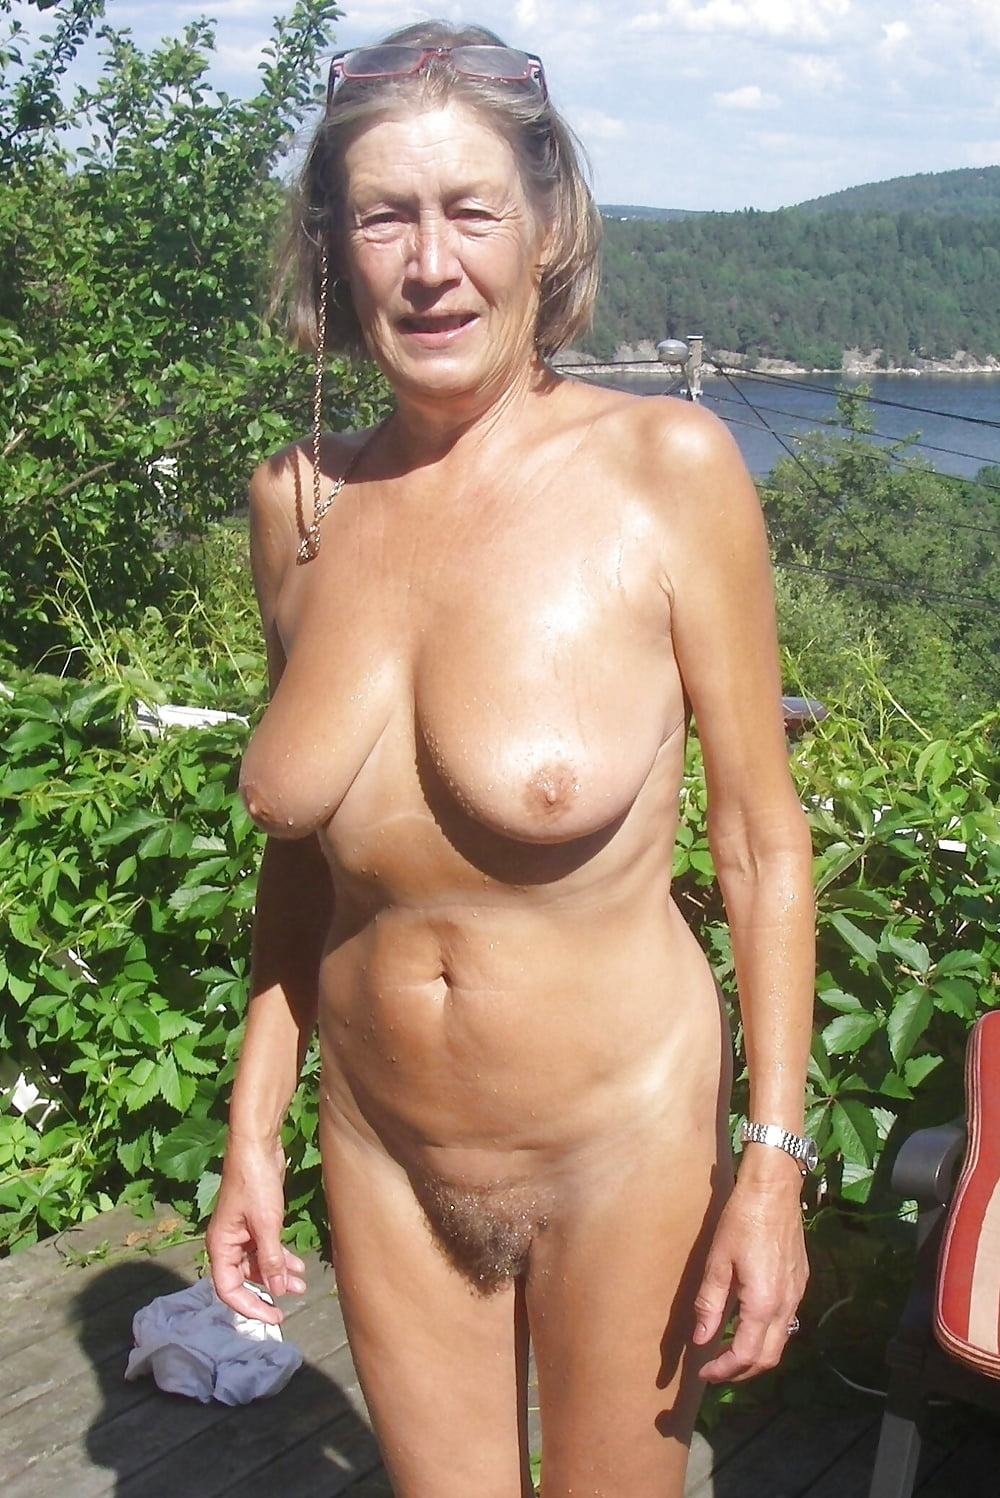 Older lady nude by pool, girls one cup acutual video